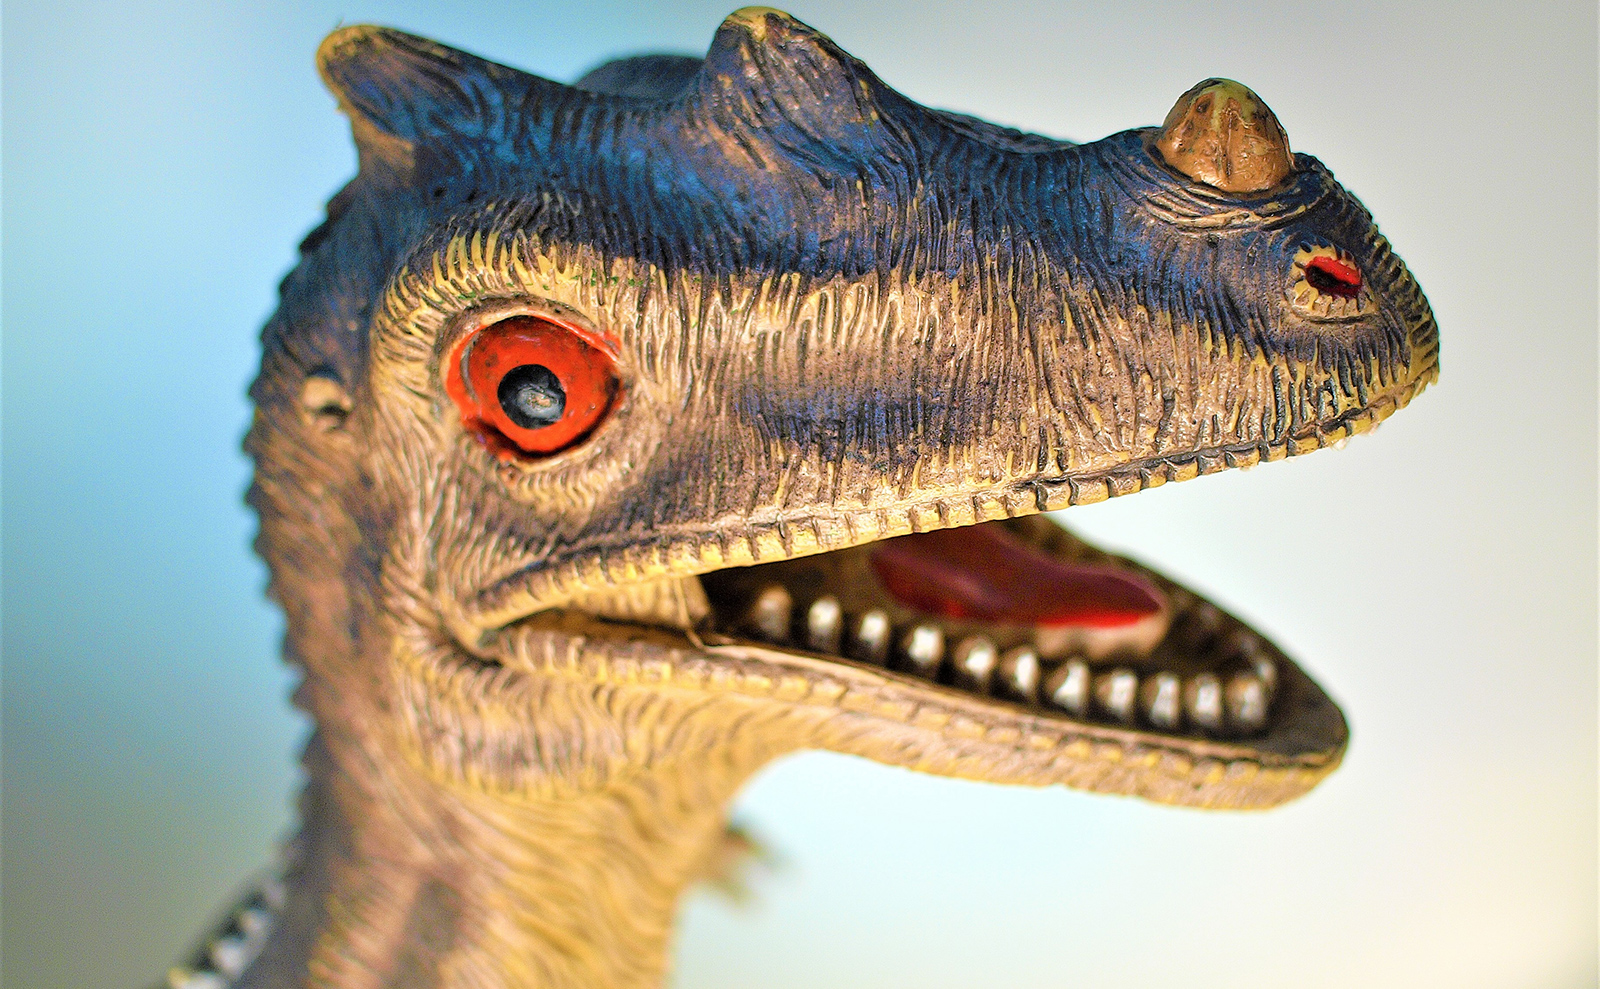 close up of toy dinosaur